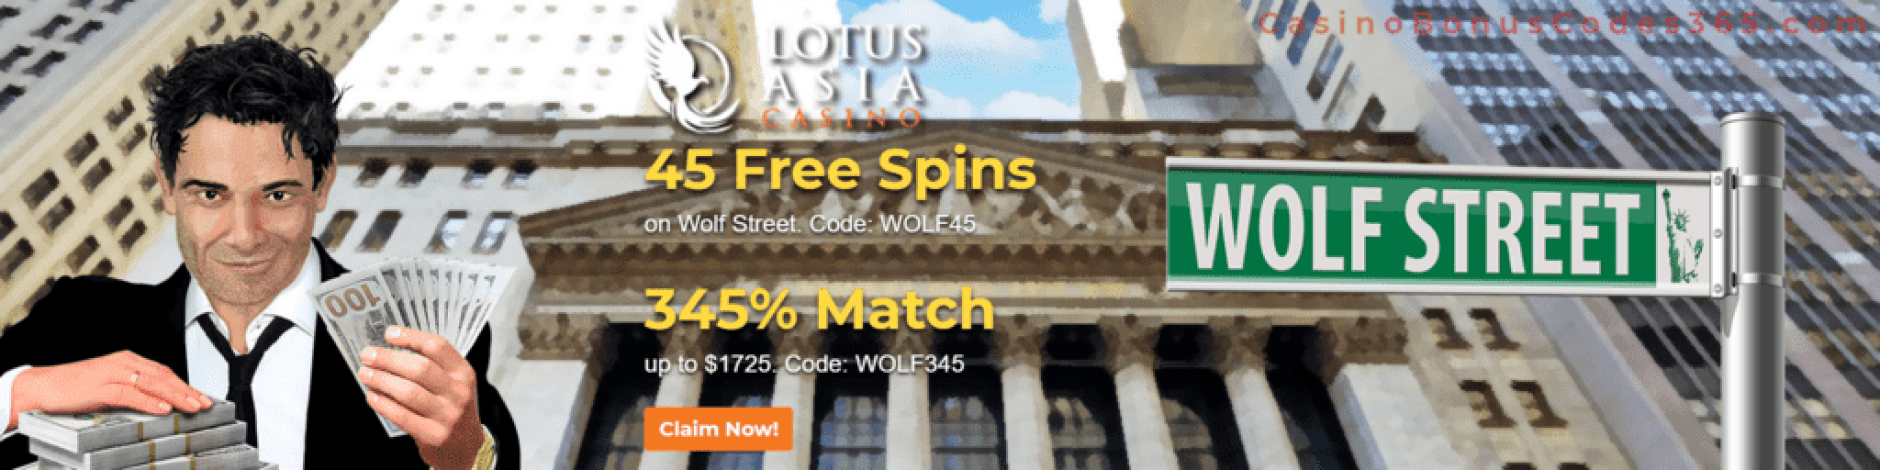 Lotus Asia Casino 45 FREE Saucify Wolf Street Spins plus 345% Bonus Special Offer